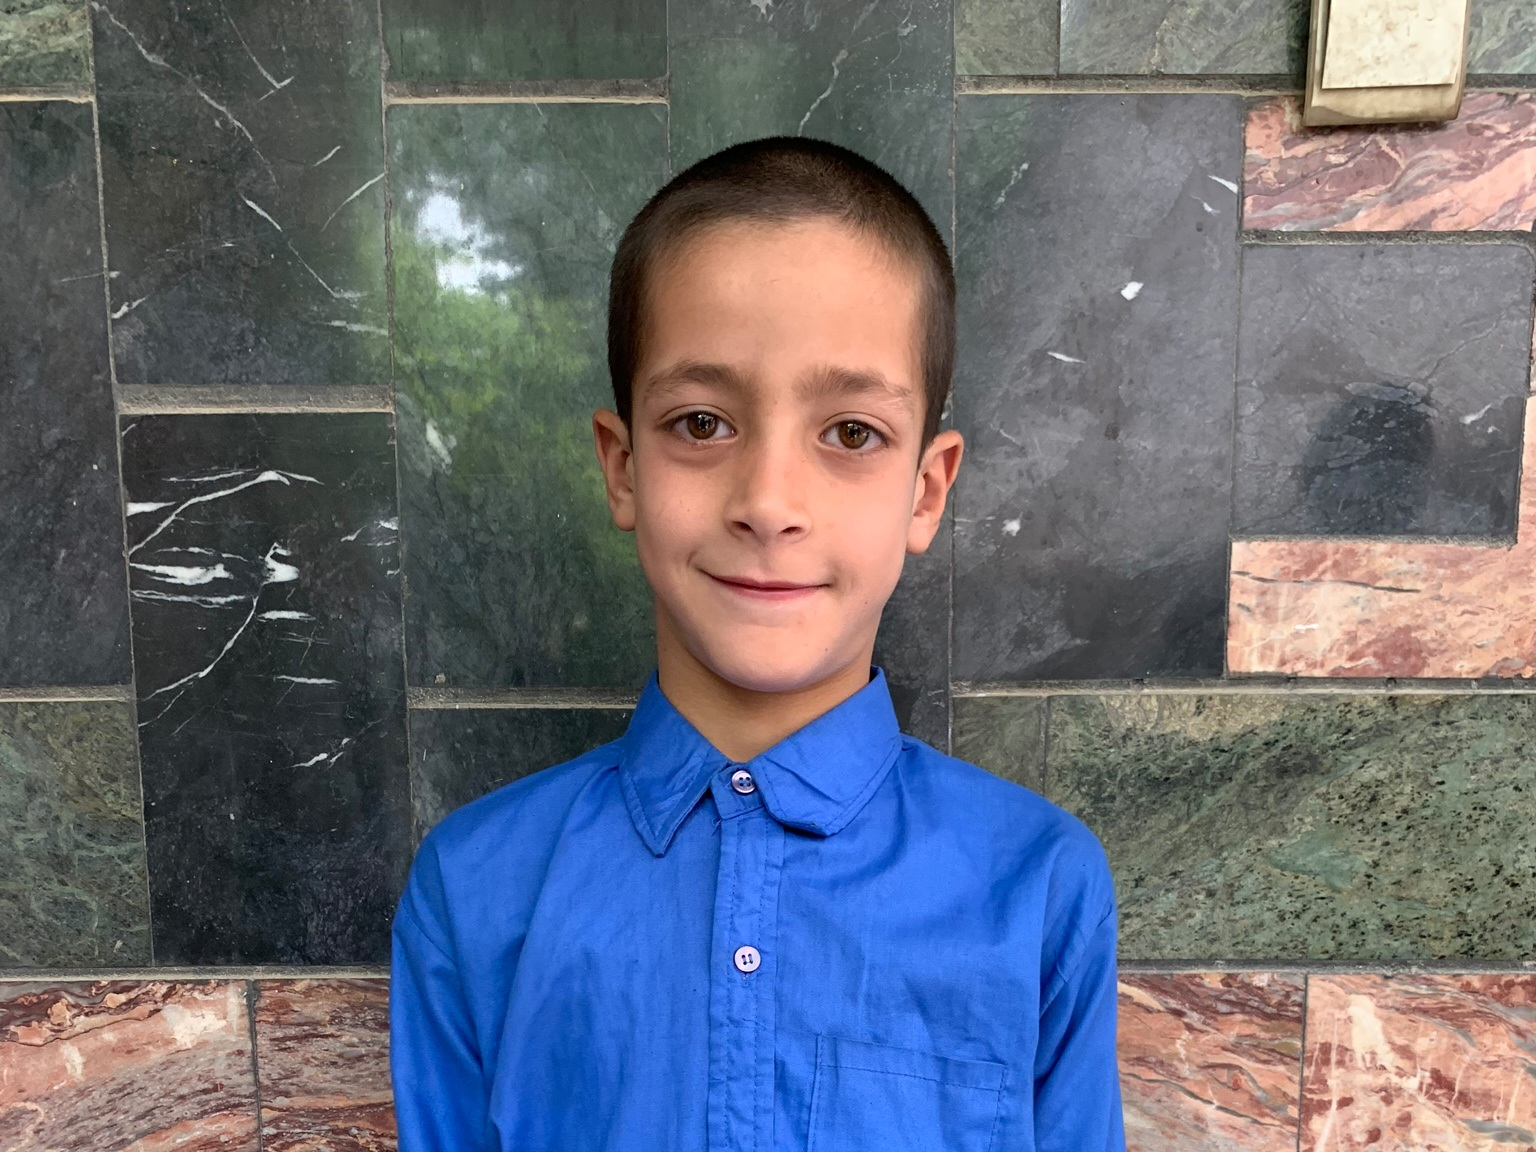 Amir Hossein, Age 8 - Amir Hossein has 3 siblings. His mother does not have work at this time. His father does bicycle repair.BE AMIR HOSSEIN'S PARTNER>